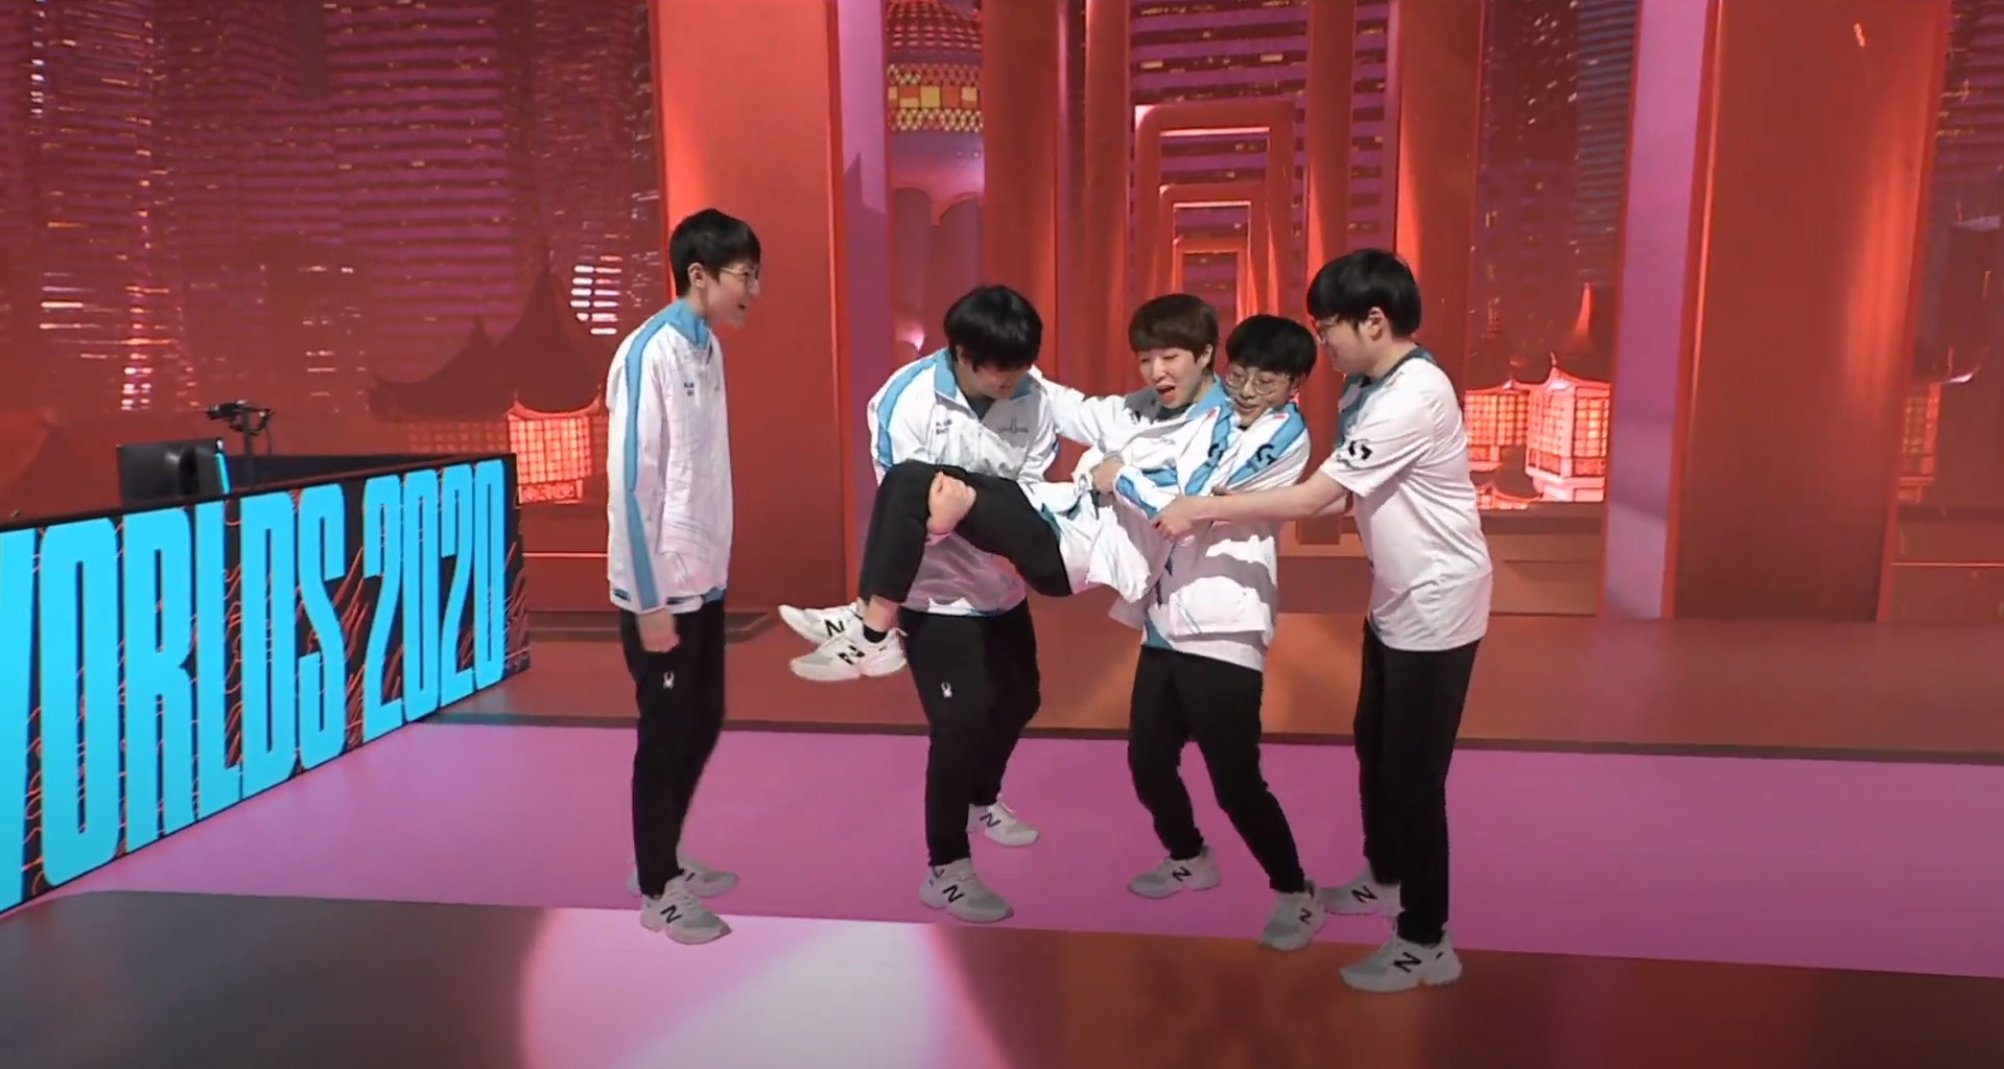 DAMWON gaming chose to style on G2 after their defeat, imitating their victory celebration